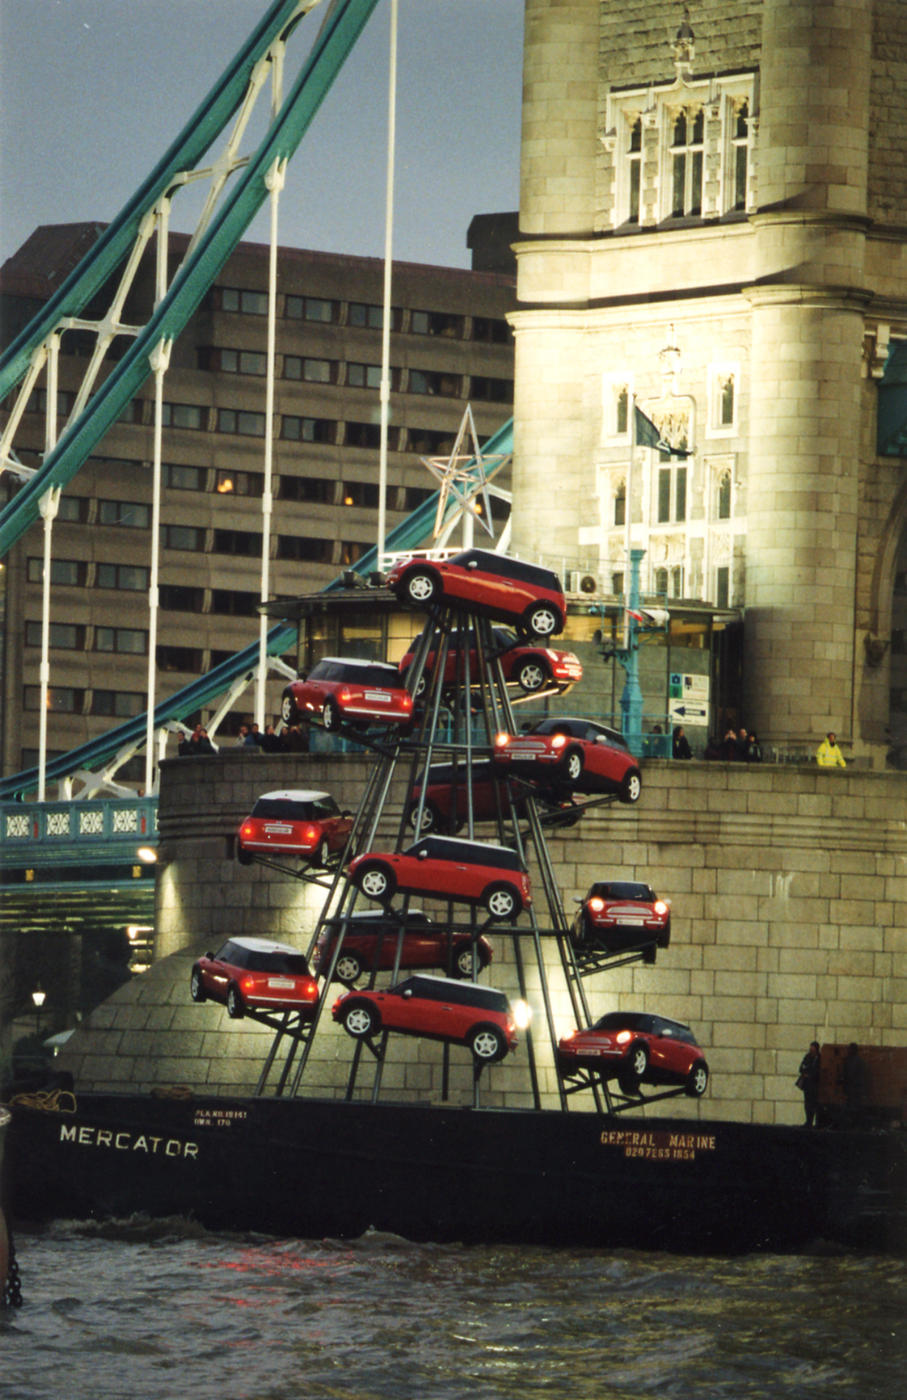 Fibreglass MINI Cooper R50 Christmas Tree Advertising Campaign on the Thames